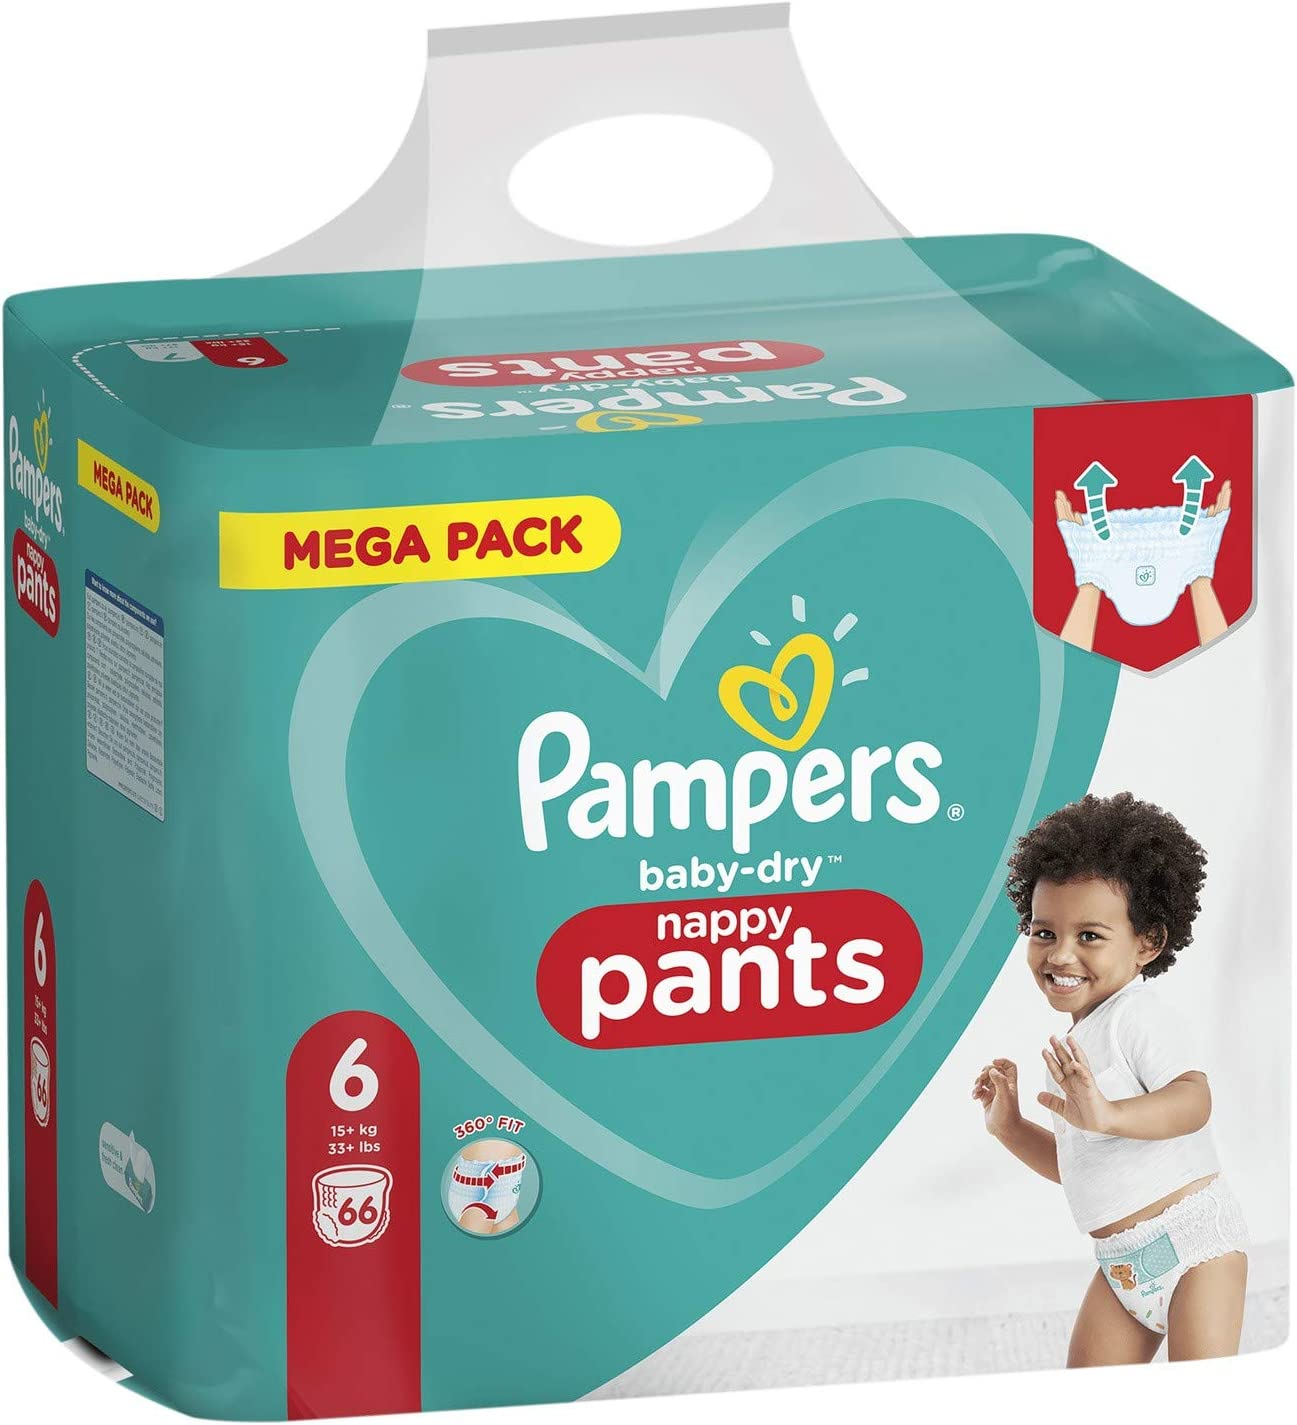 Pampers 81714244 Baby-Dry Pants Nappy Pants White